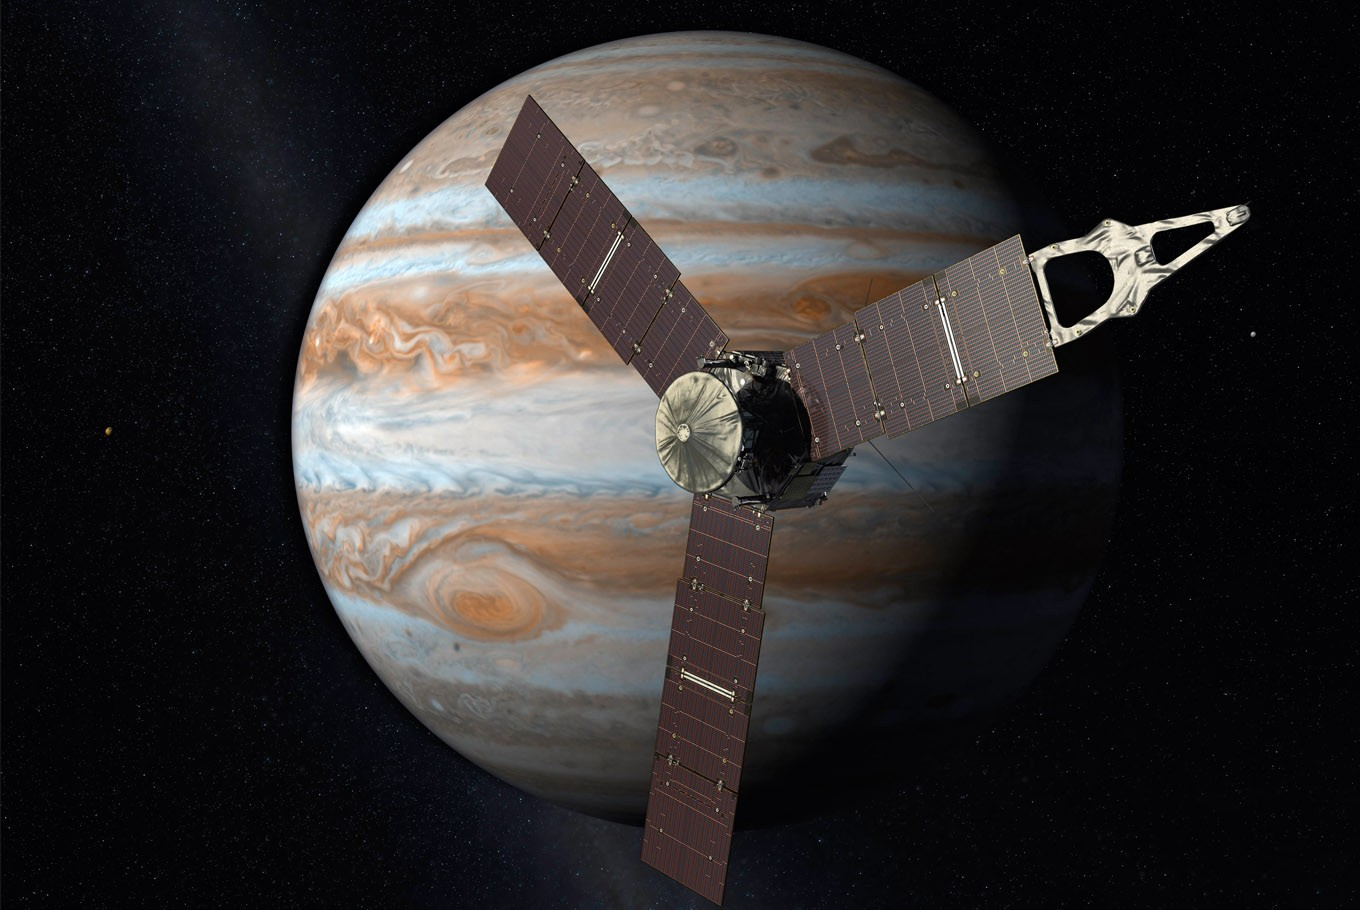 3-2-1: A look at NASA's Jupiter mission by the numbers